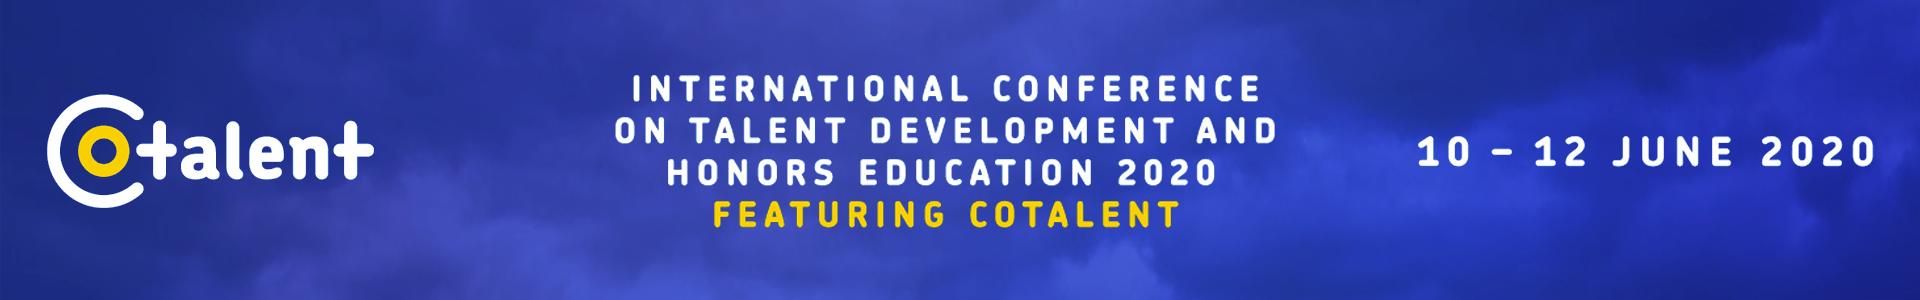 International Conference on Talent Development and Honors Education